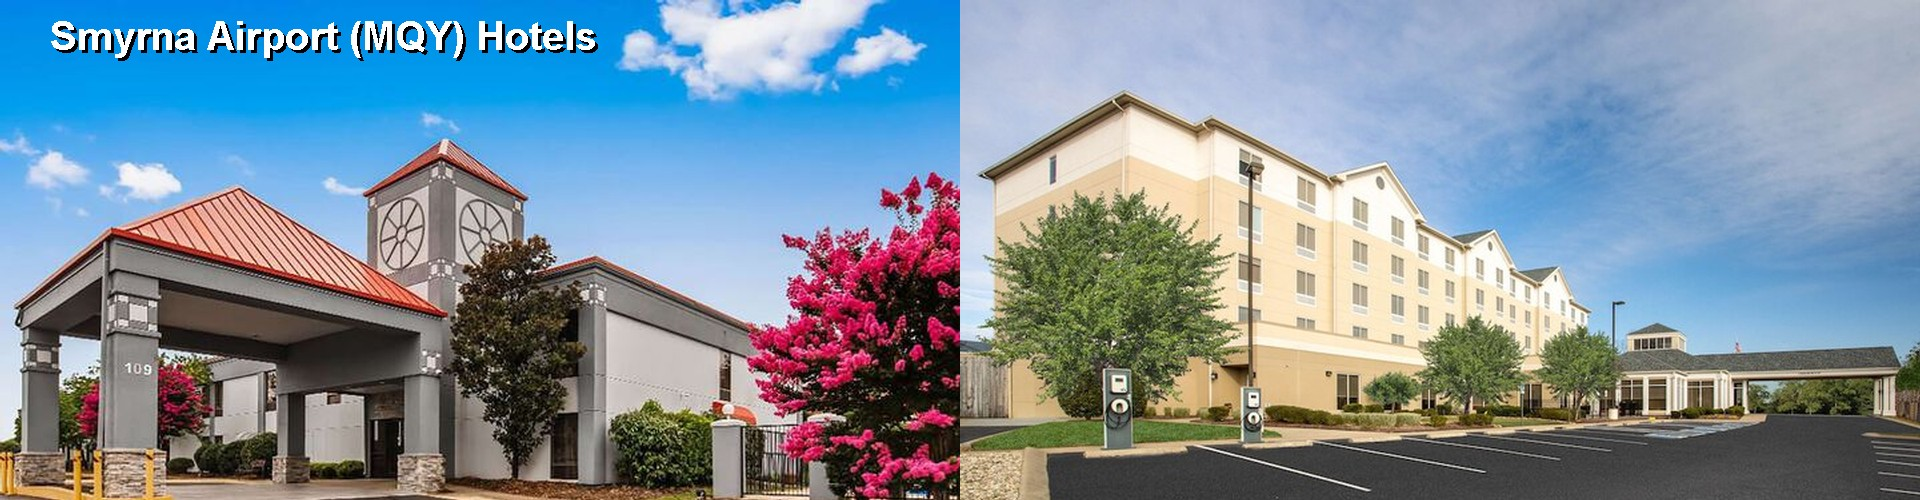 5 Best Hotels near Smyrna Airport (MQY)